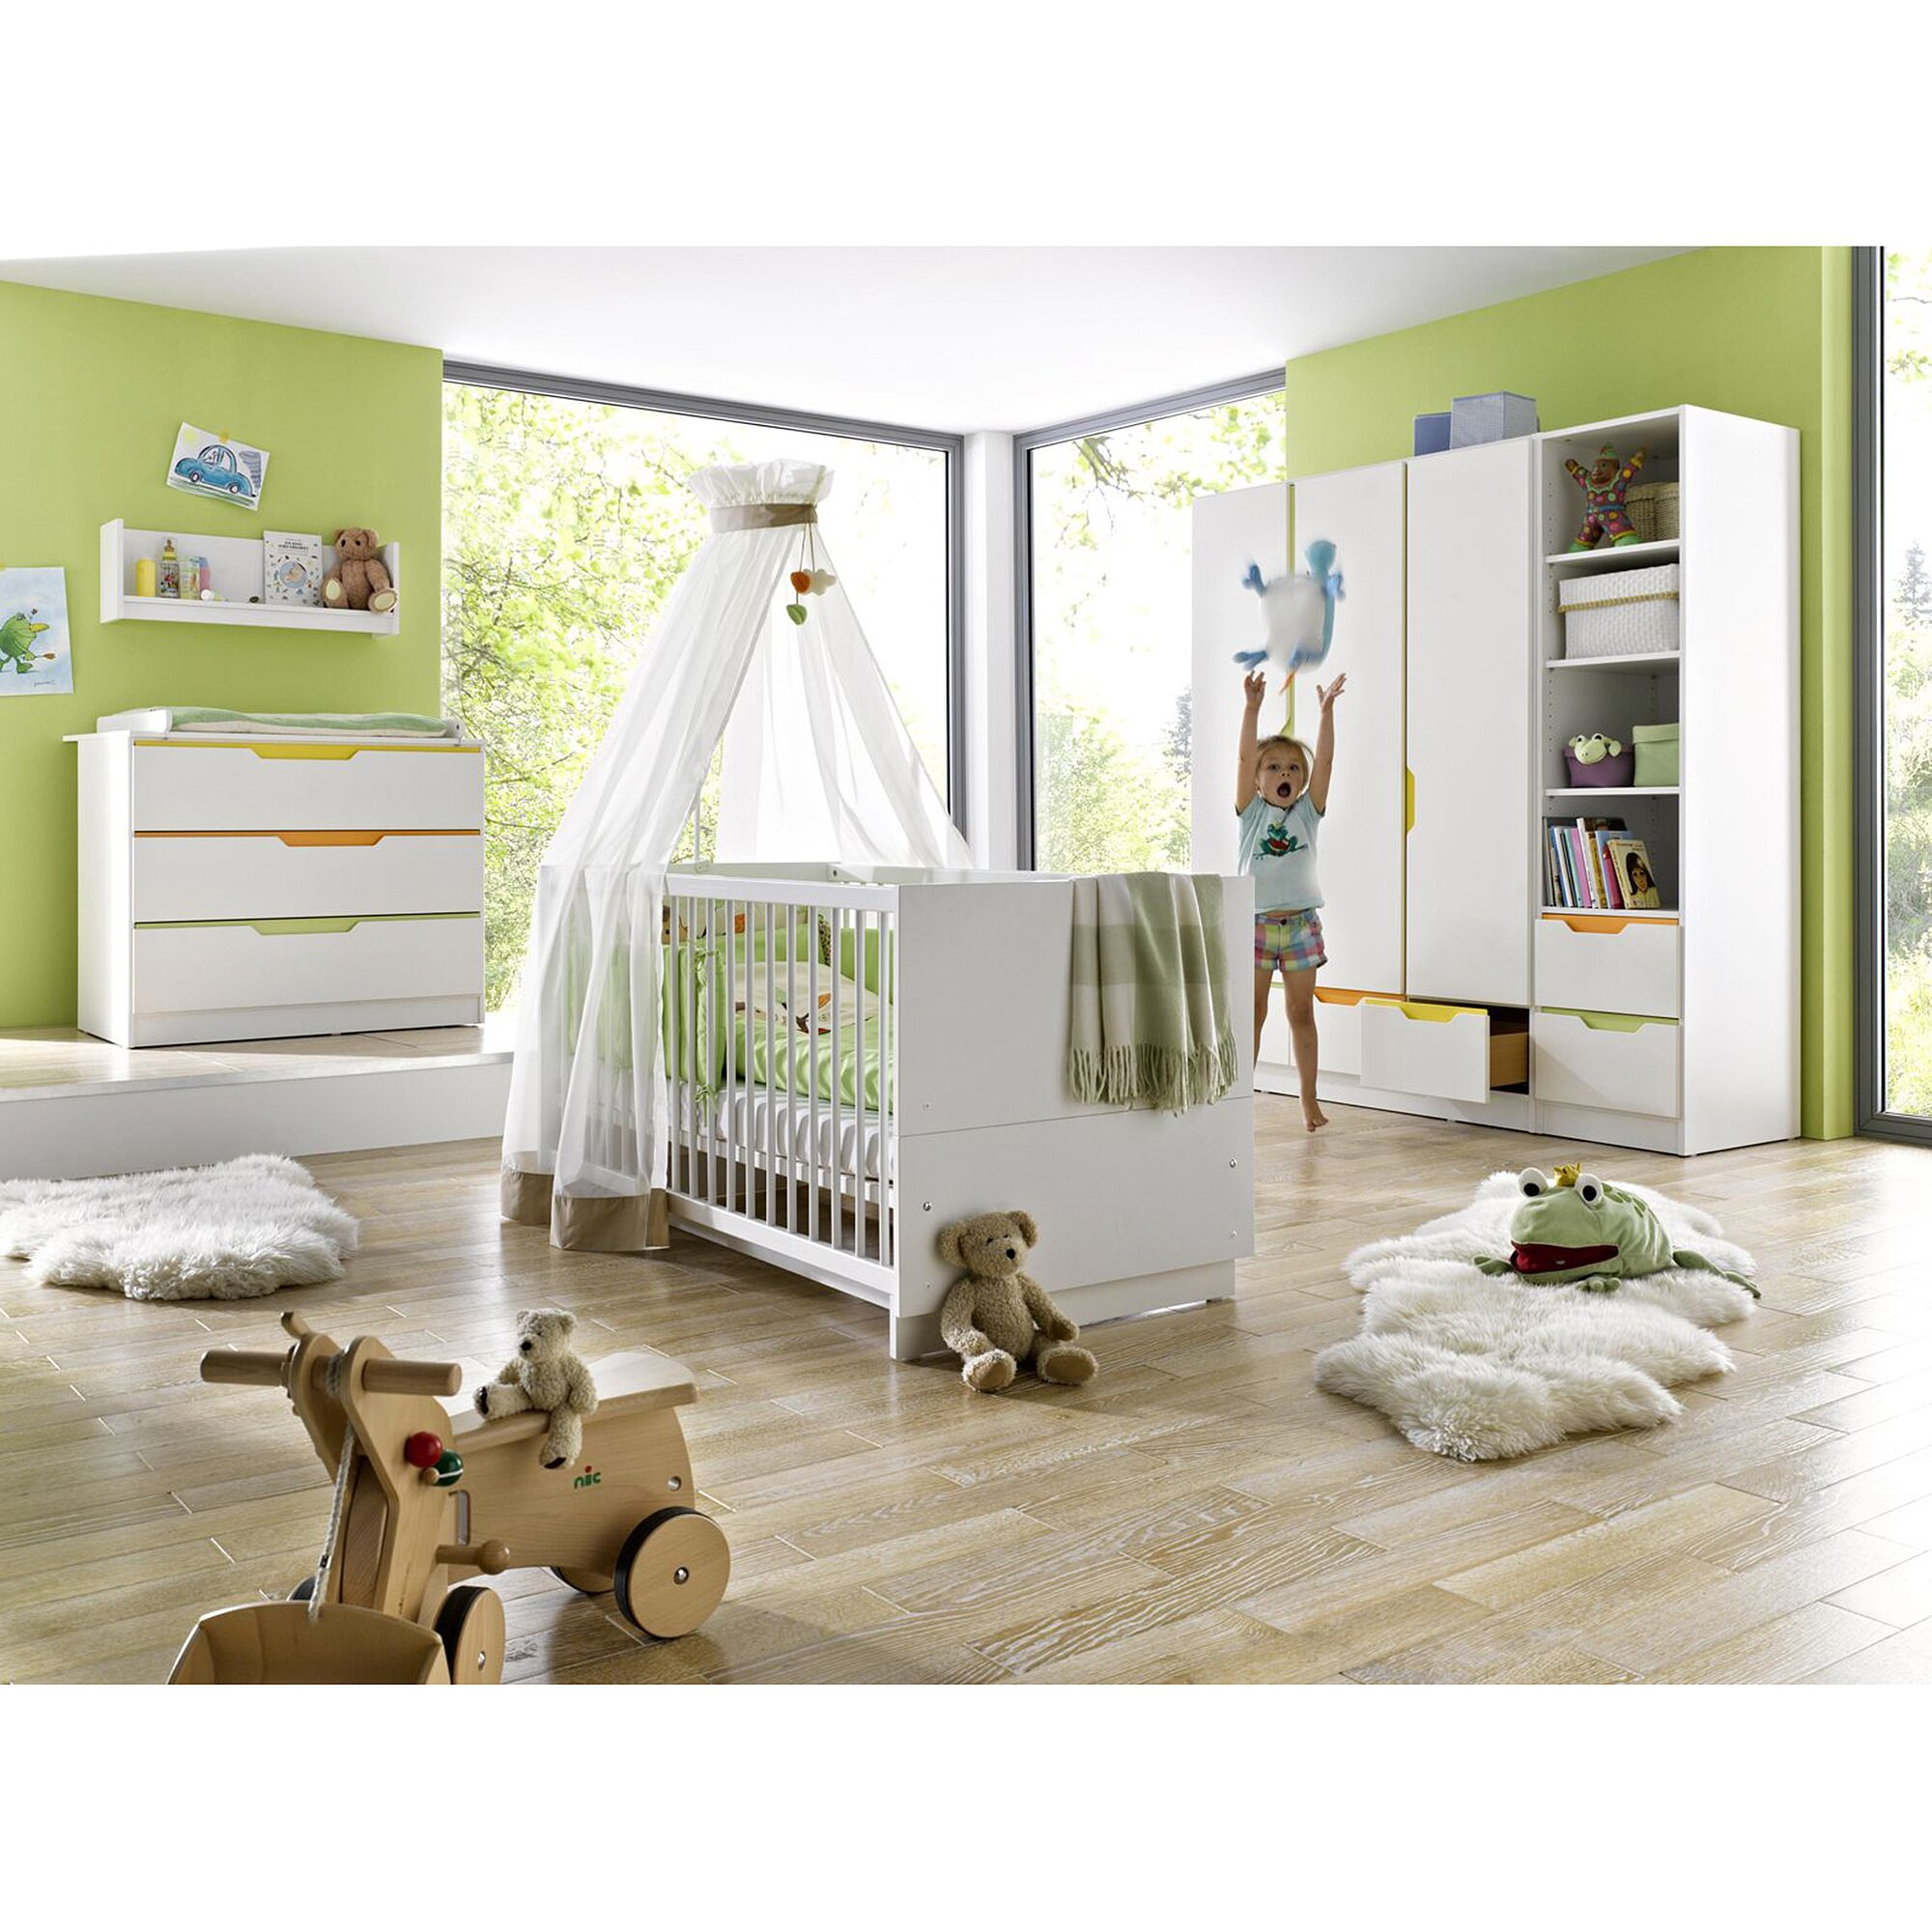 geuther-kinderzimmer-set-fresh